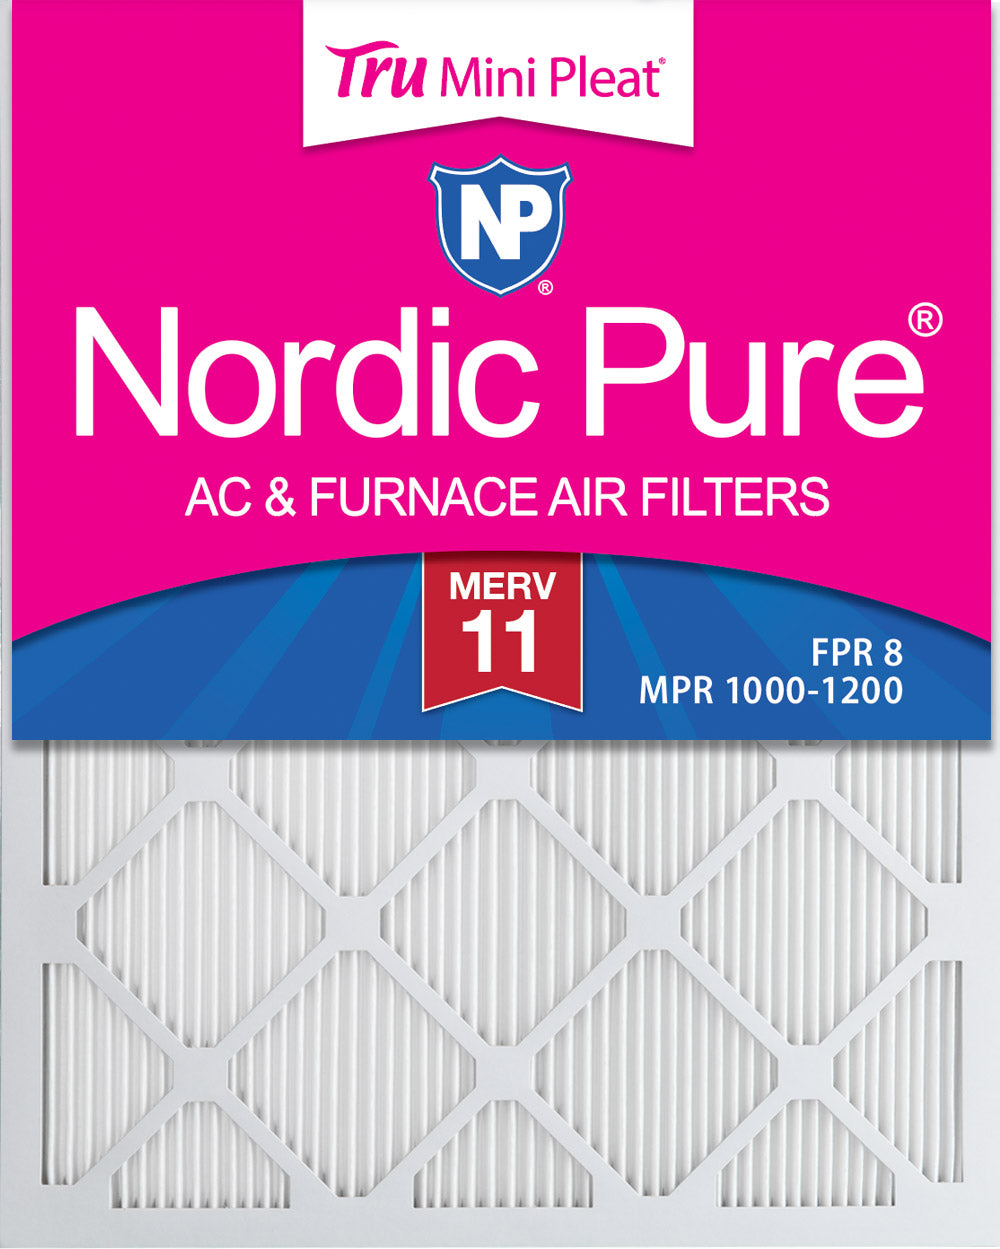 14x24x1 Tru Mini Pleat MERV 11 AC Furnace Air Filters 3 Pack